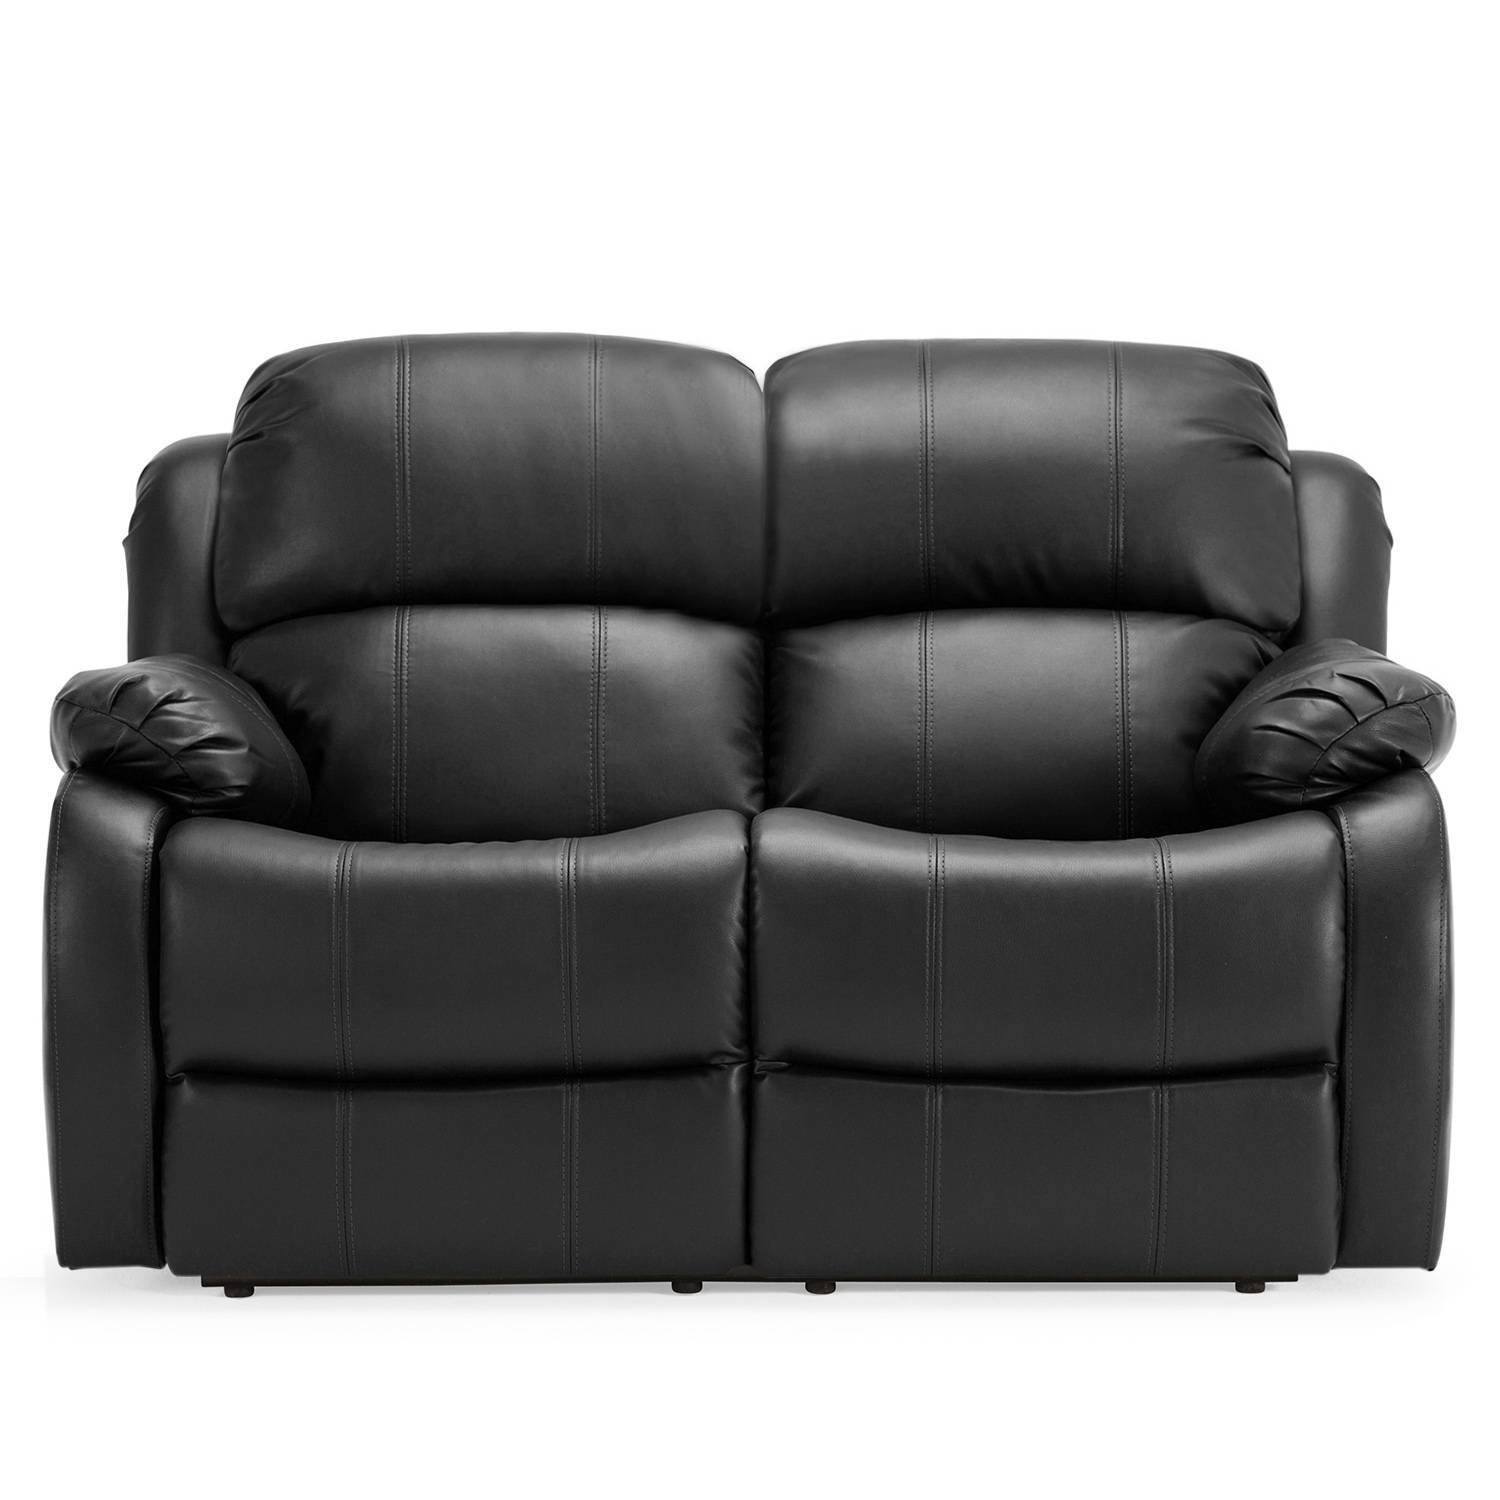 30 The Best 2 Seater Recliner Leather Sofas